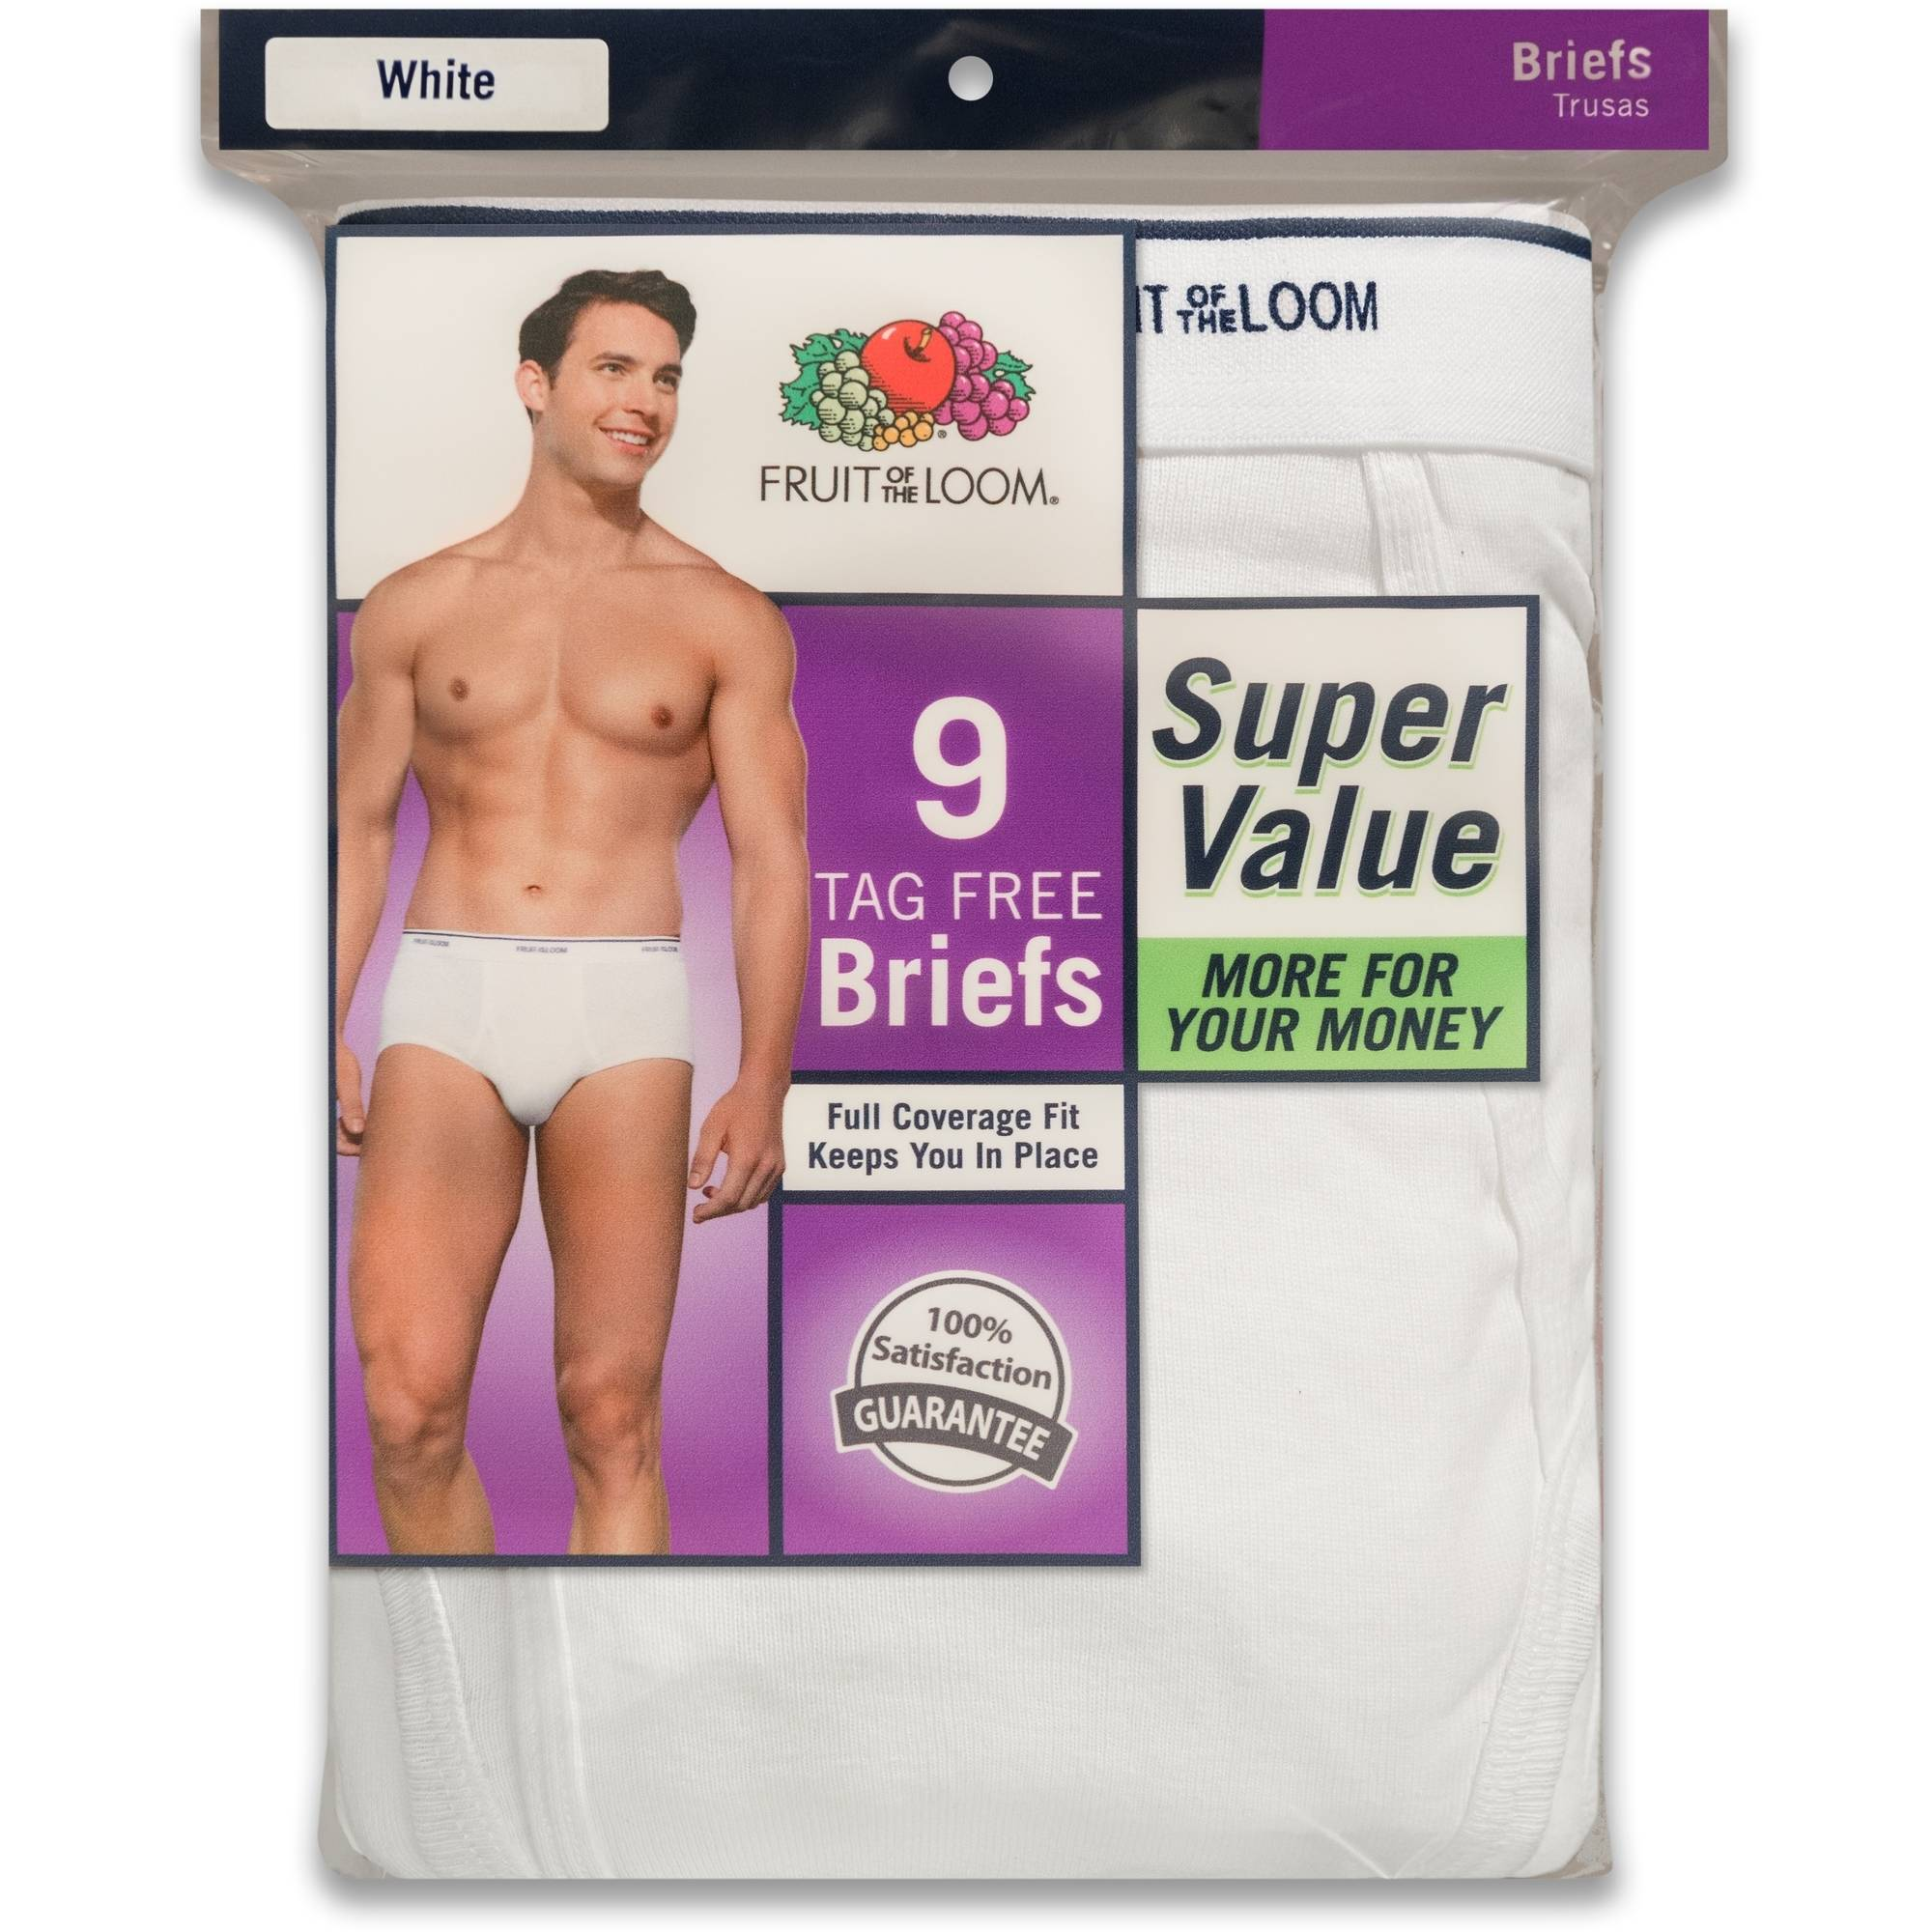 Fruit of the Loom Men's Super Value Classic White Brief, 9 Pack by Fruit of the Loom